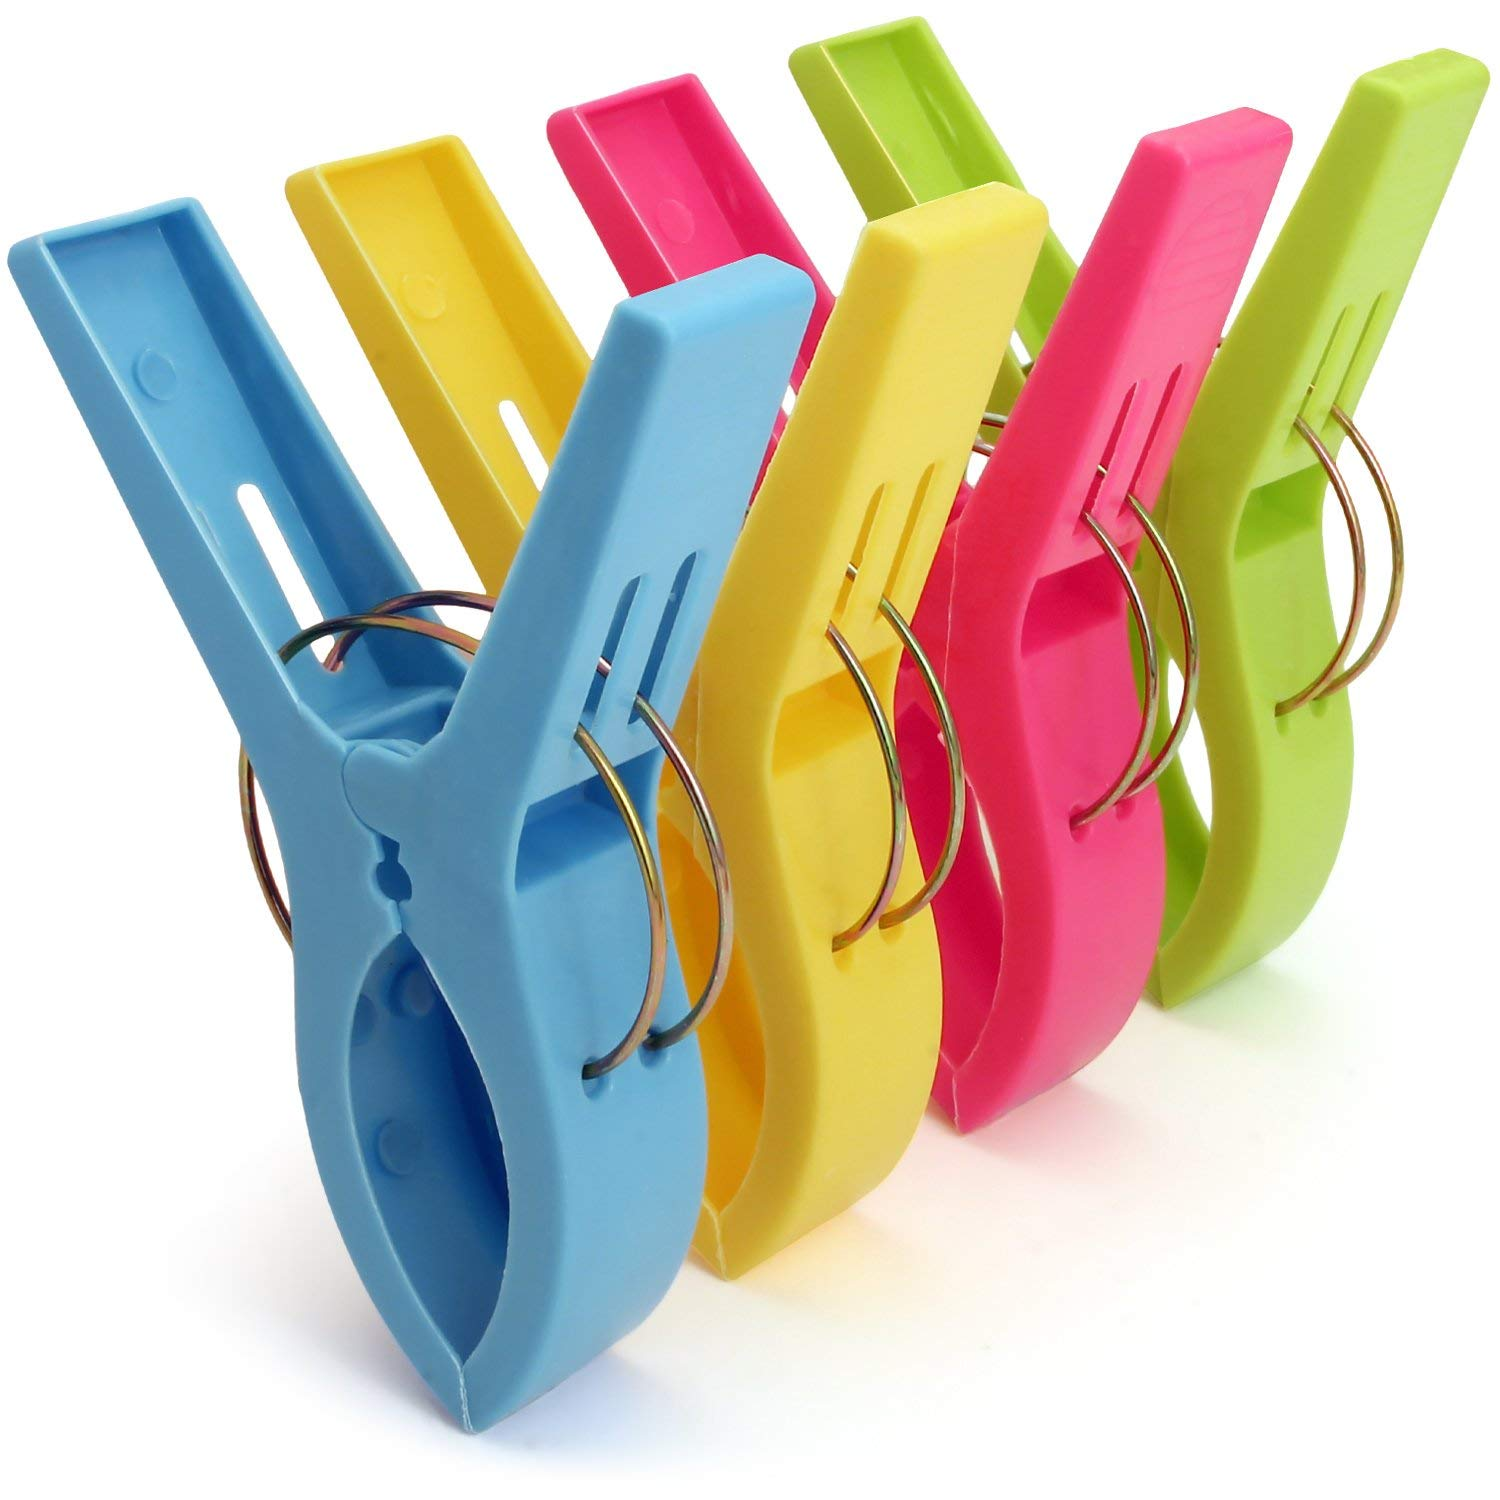 4pcs Large Plastic Towel Clips Pegs Beach Quilt Clothes Pins Sun Lounger Sunbed Complete In Specifications Drying Racks & Nets